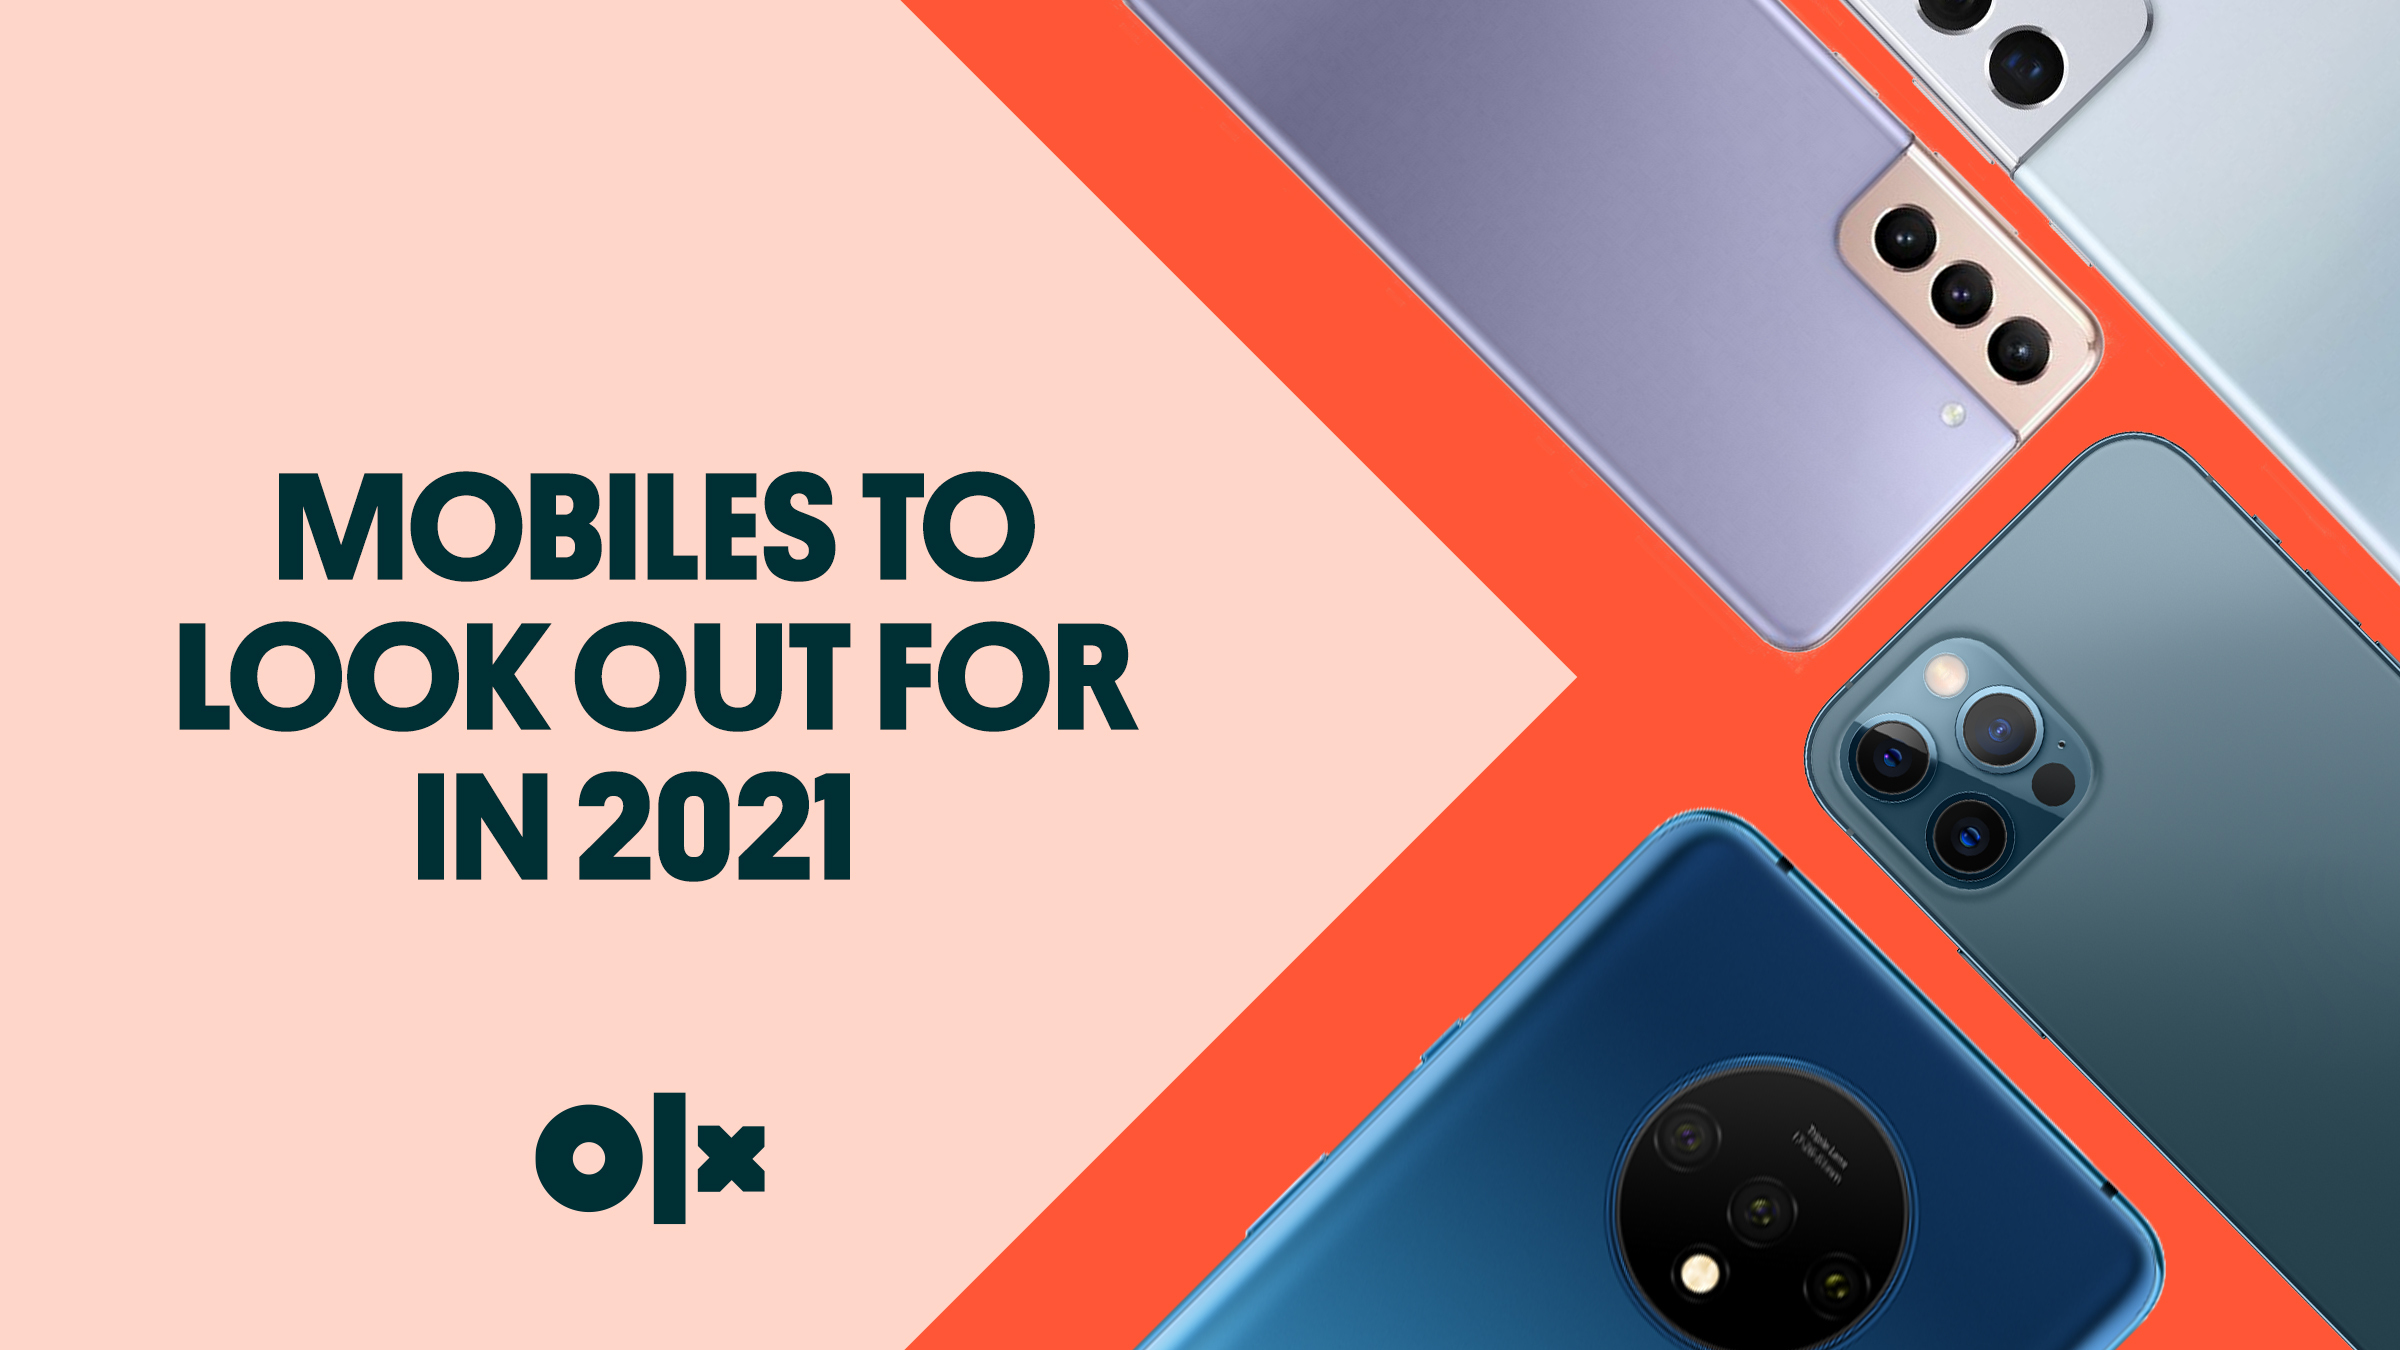 Mobiles To Look Out For in 2021